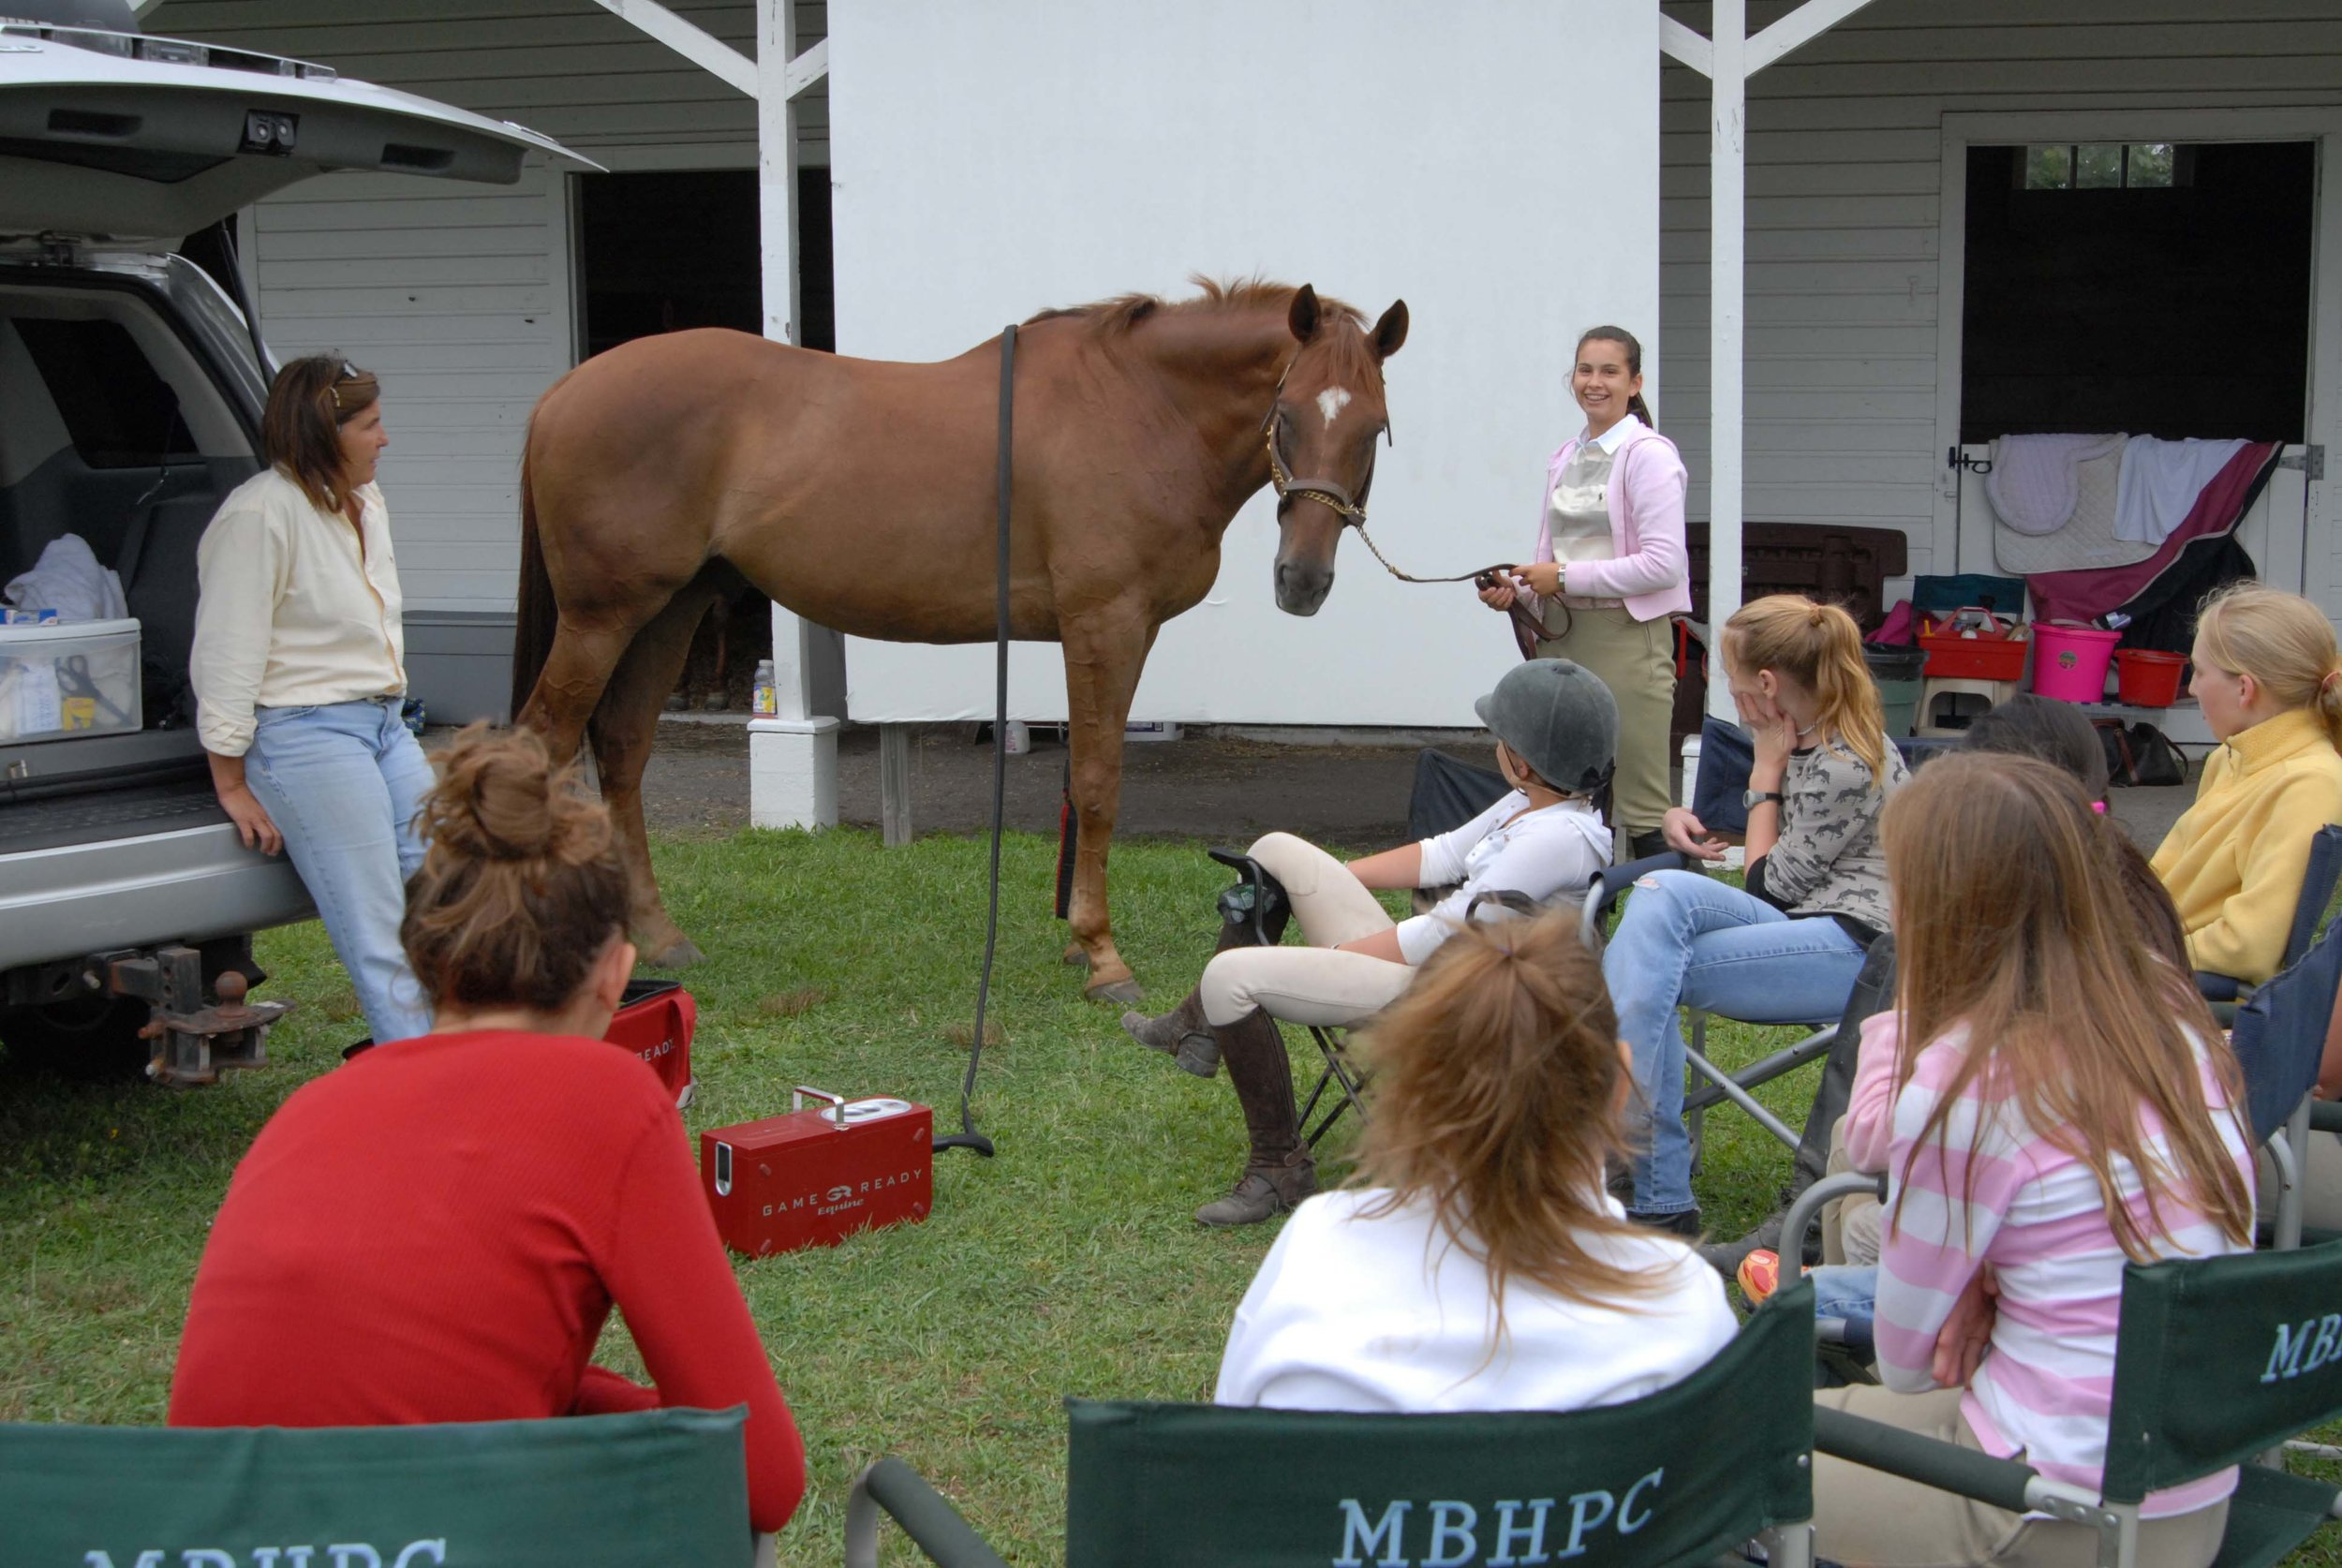 Old Field Farm hosted a lecture on horse care by the Meadowbrook Hounds Pony Club during a Pony Club summer camp. Photo courtesy Old Field Farm, Ltd.